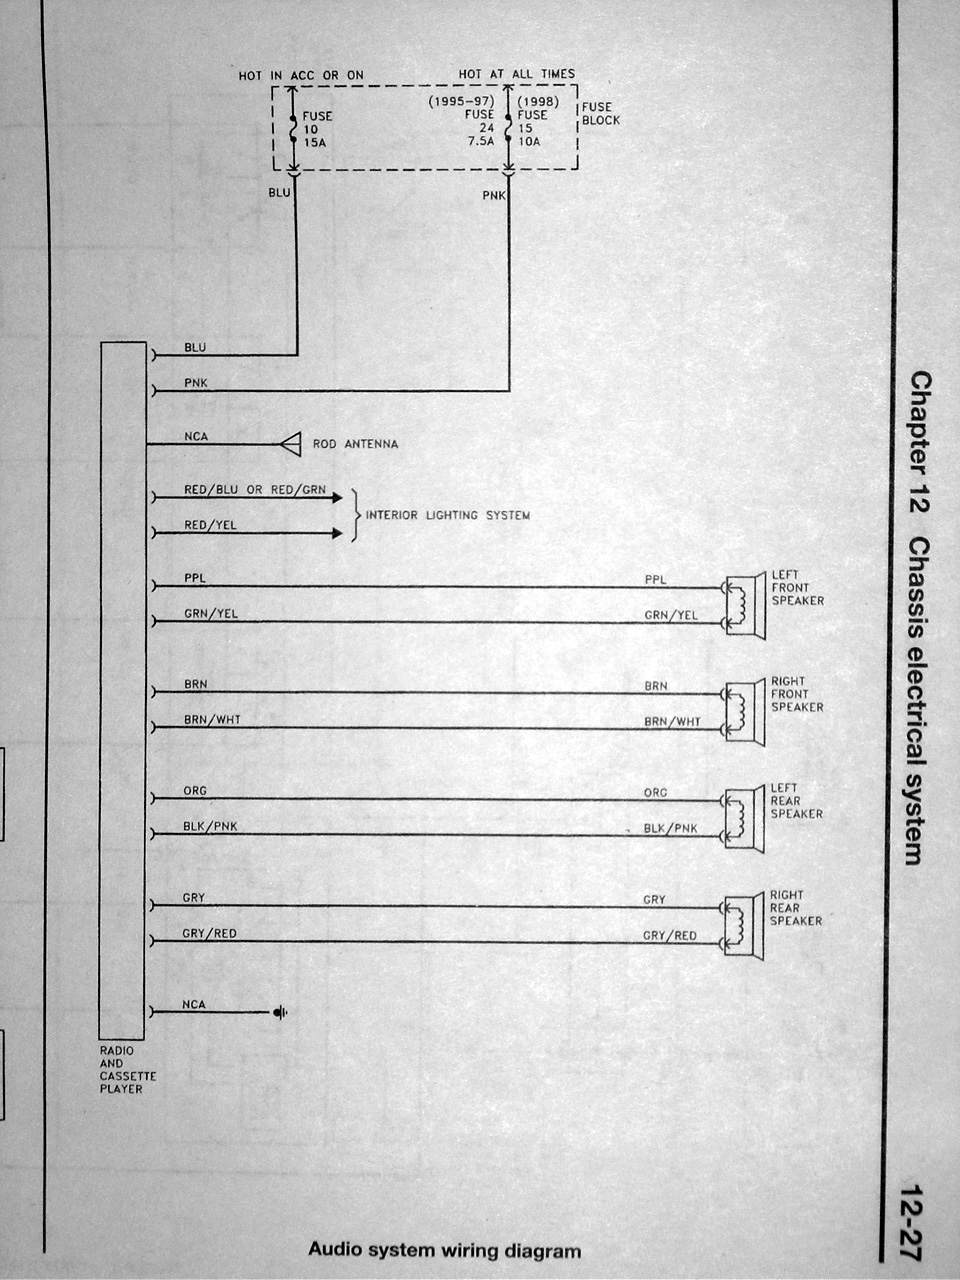 hight resolution of 2003 nissan sentra radio wiring diagram wiring library rh 48 bloxhuette de 1998 nissan sentra wiring